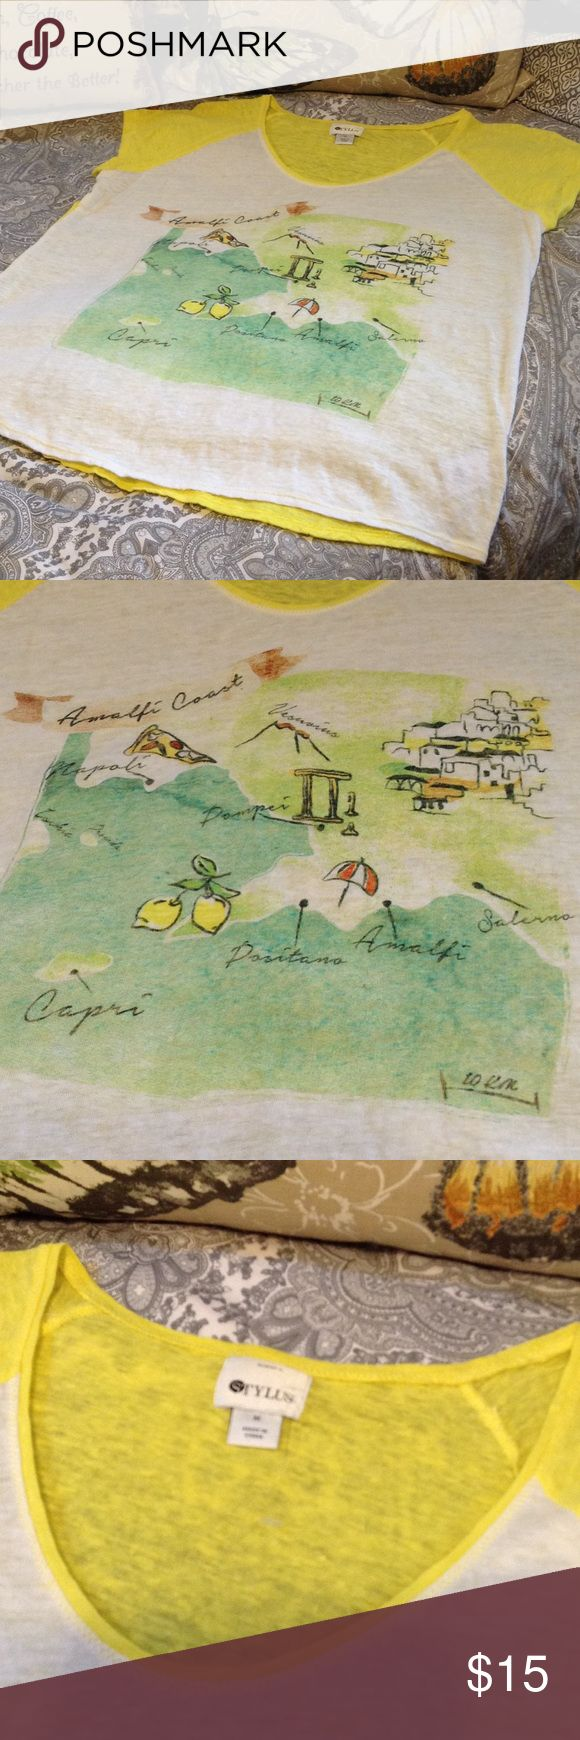 🆕 Amalfi Coast Top ☀️🏖🍋🍕🌋 NWOT, Never Worn! Cute Yellow and White Lightweight Top with an Amalfi Coast Graphic with Green. Super for Summer and Traveling! Stylus Brand Size Medium Stylus Tops